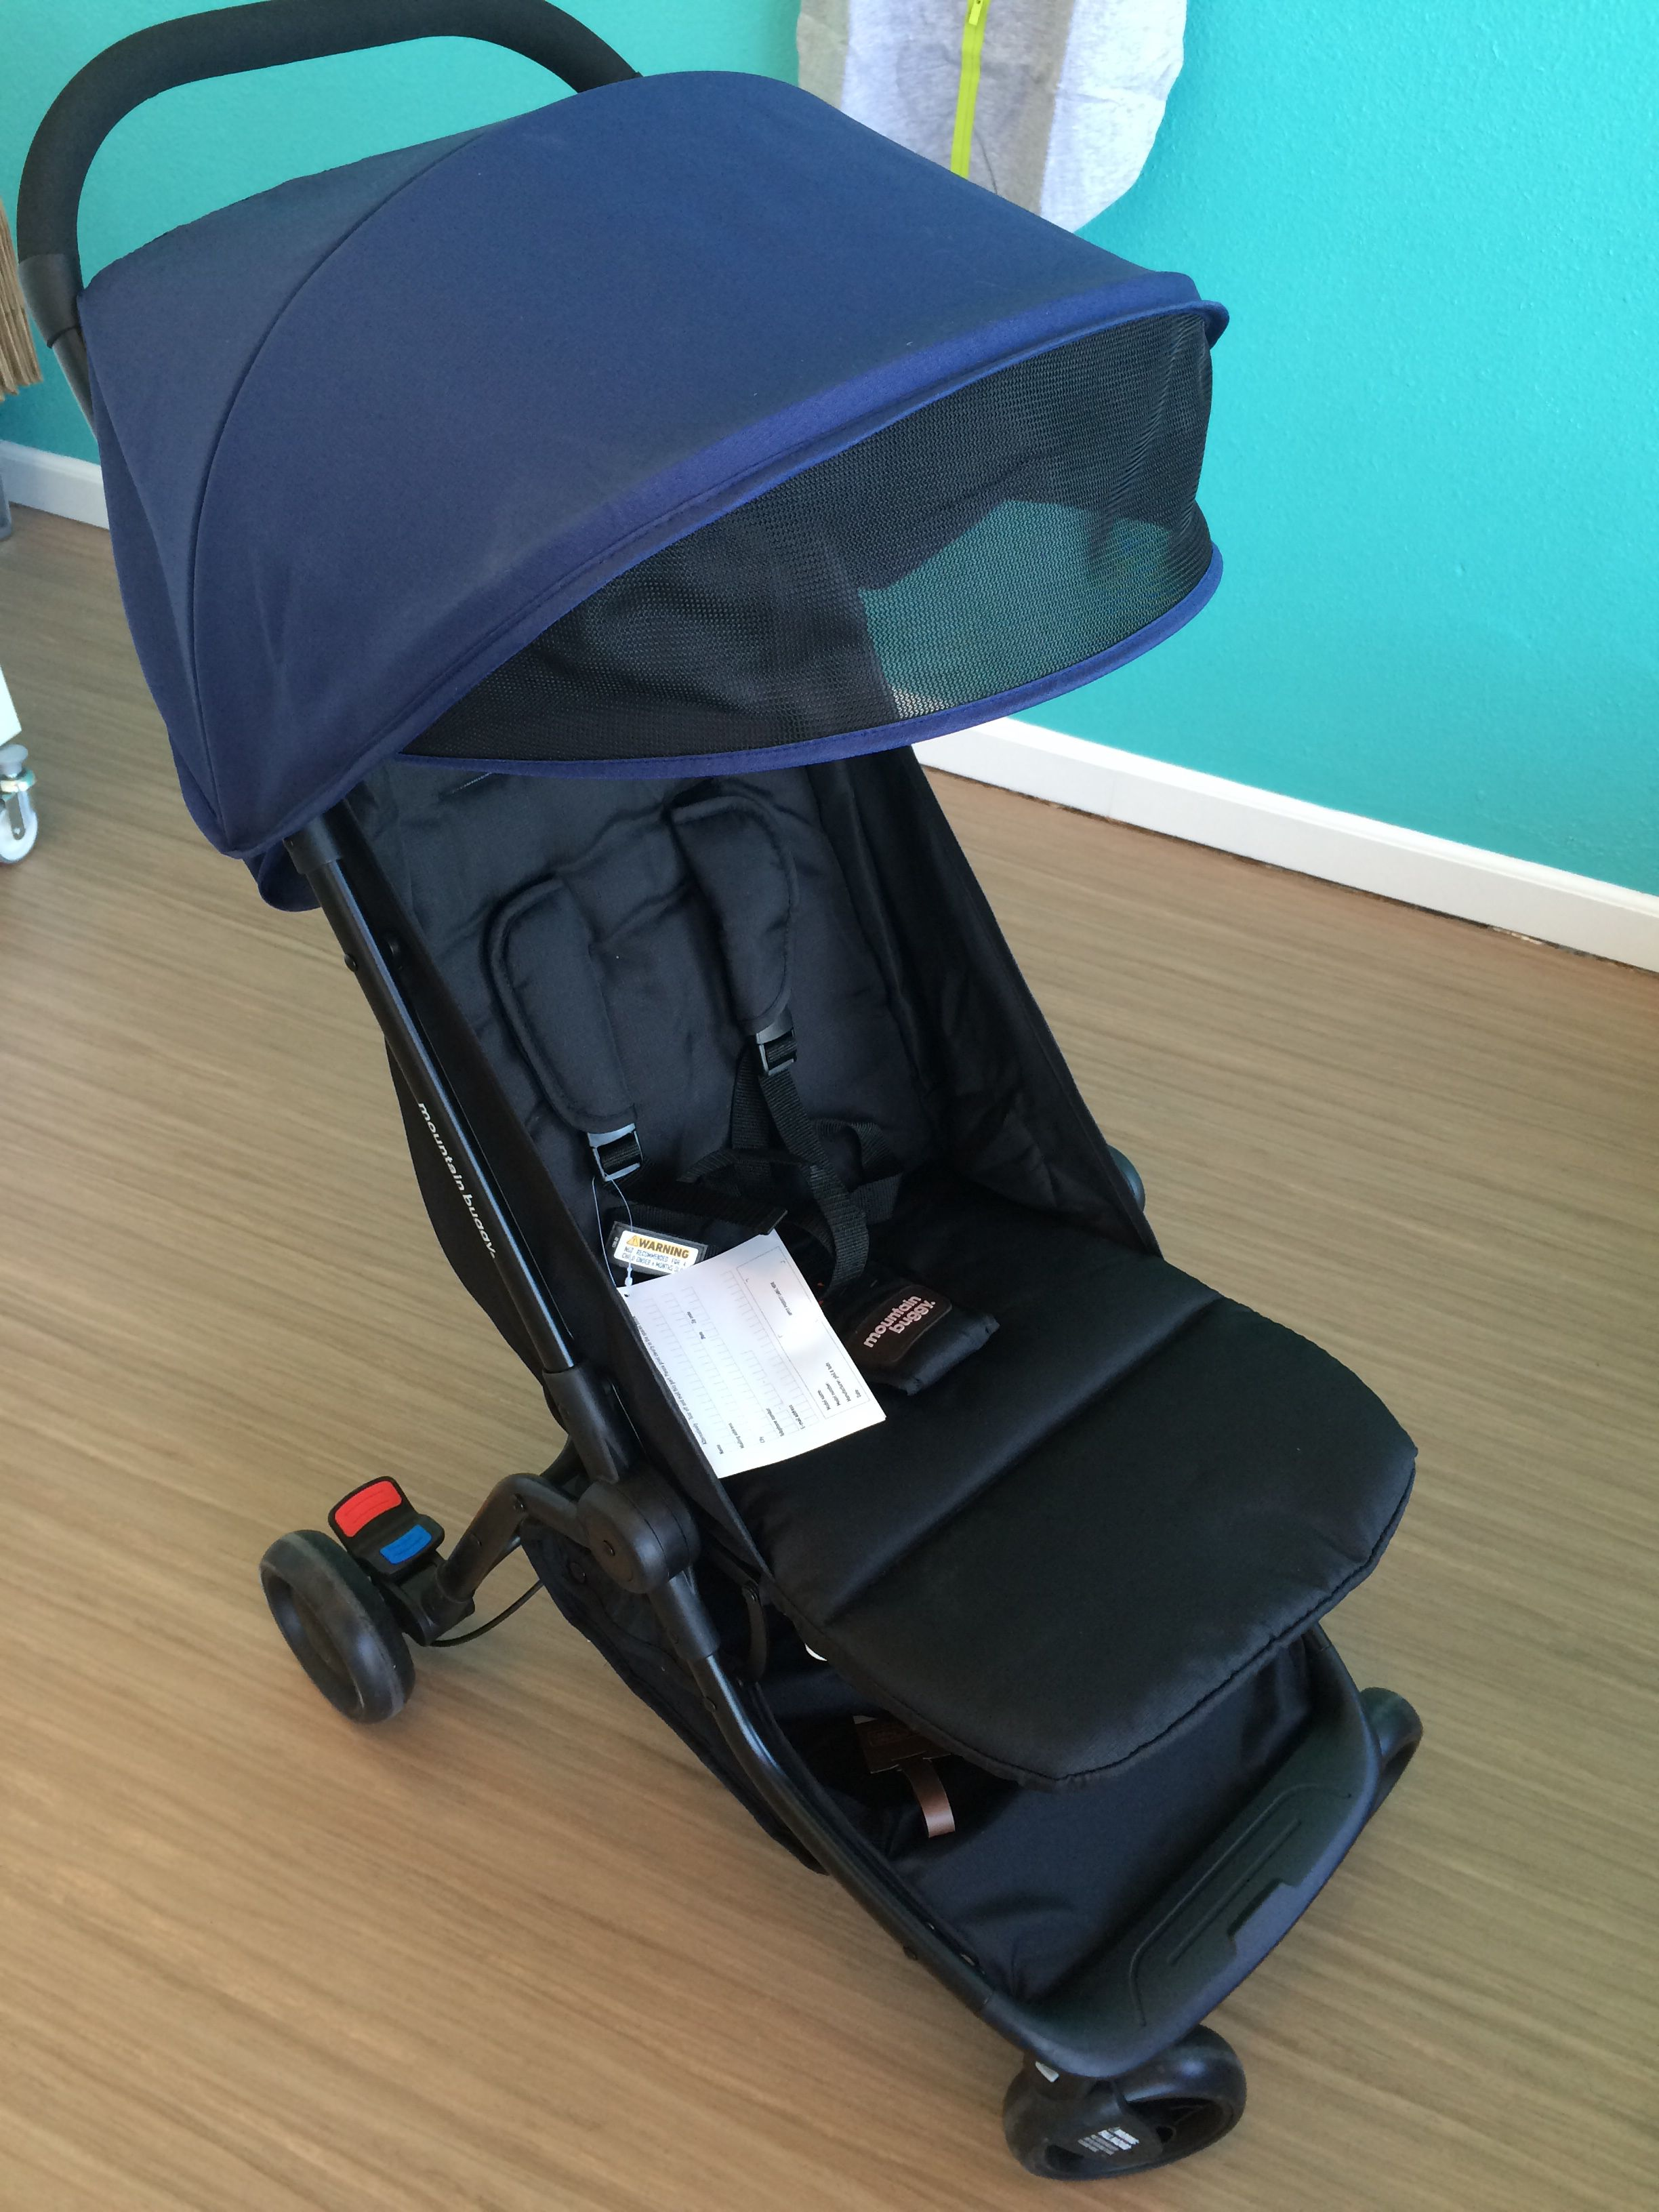 Mountain Buggy Nano, great travel stroller! Fits in the